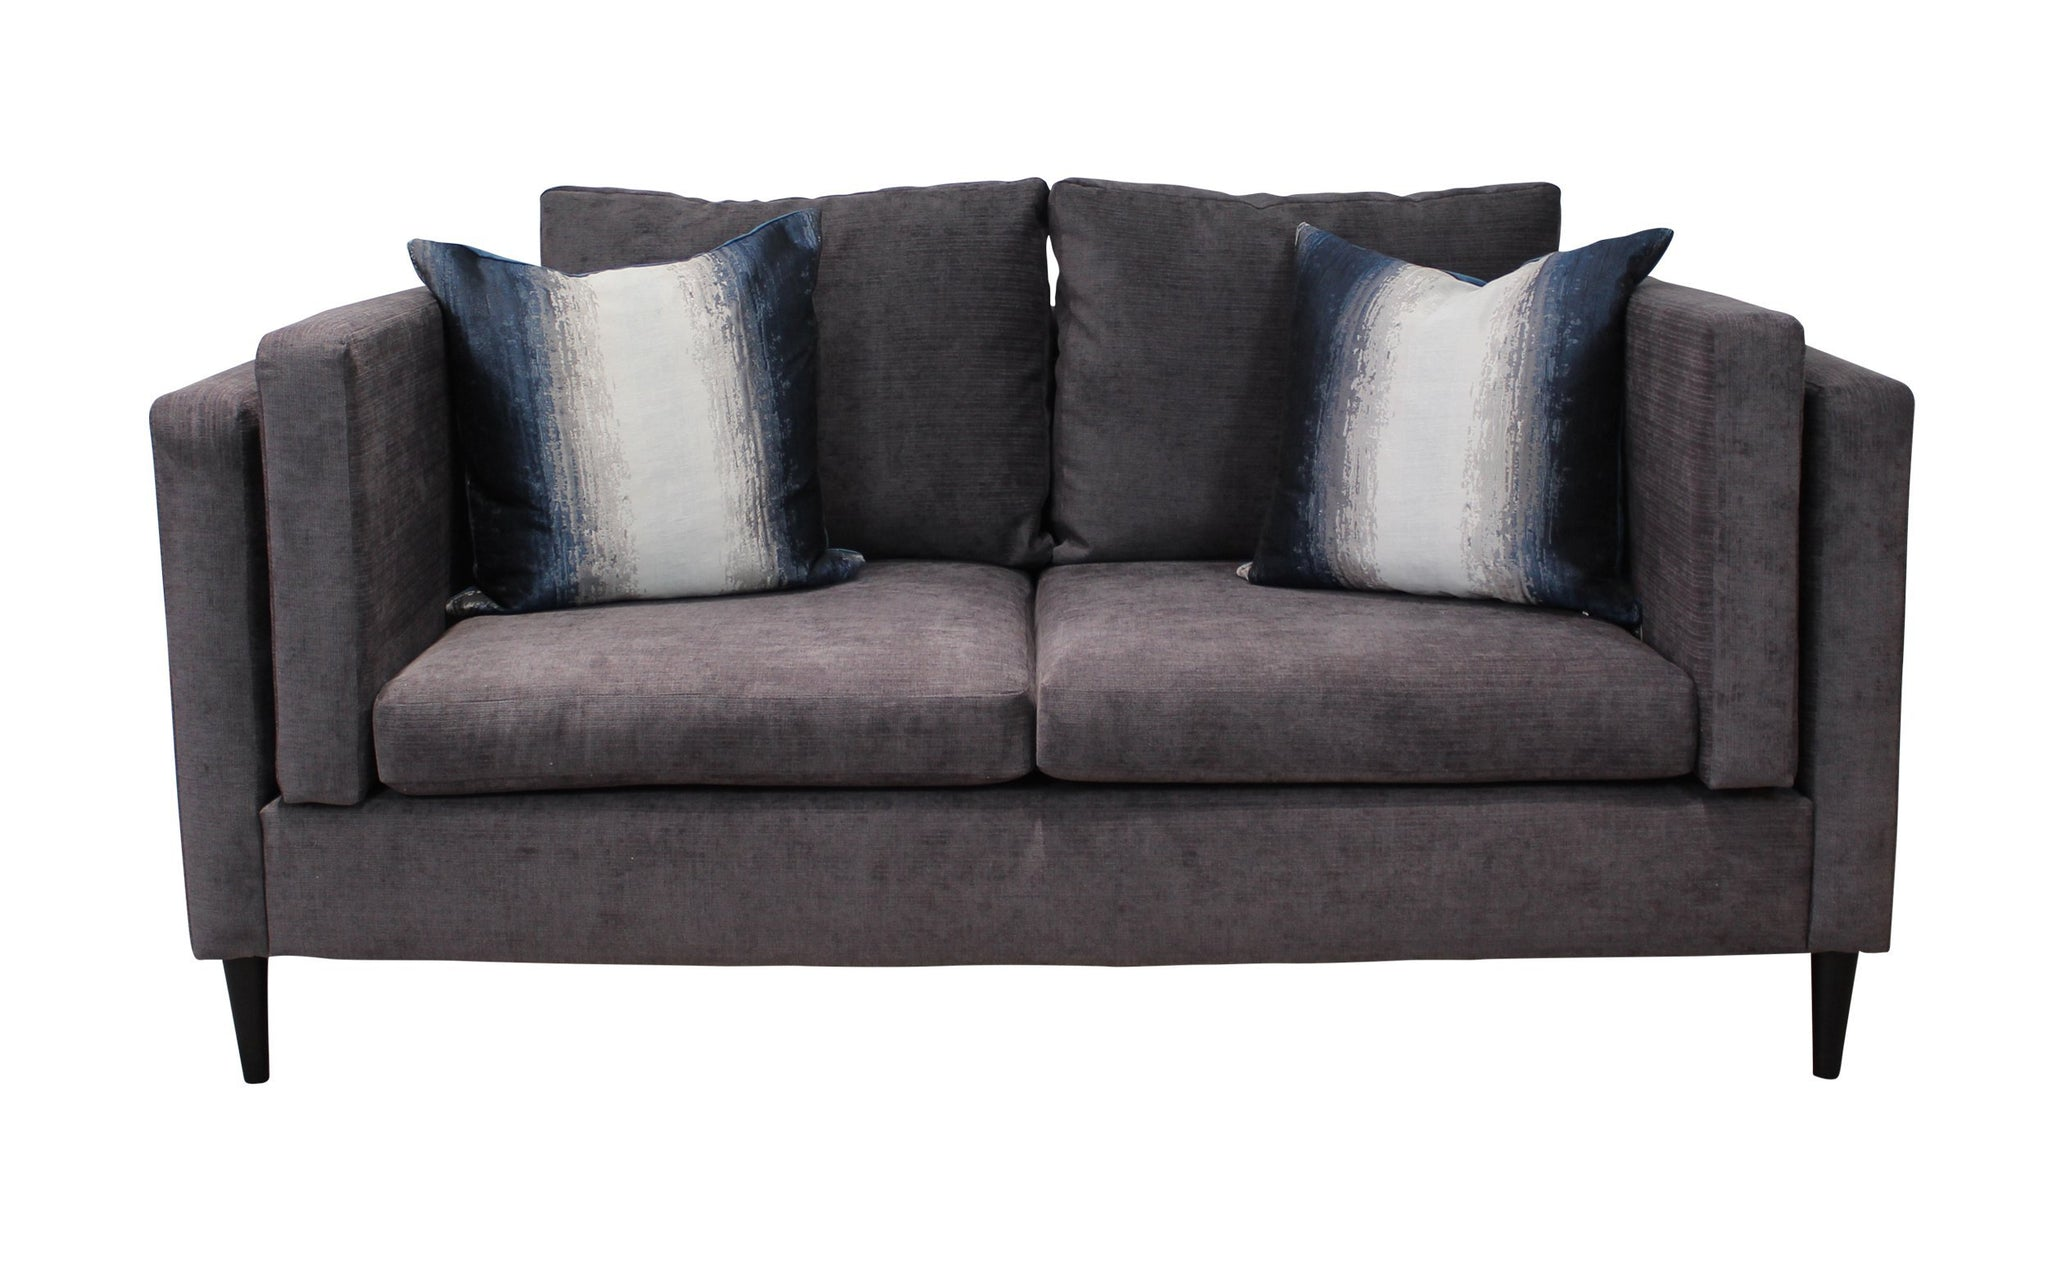 Dublin 2-Seater Sofa - Grey